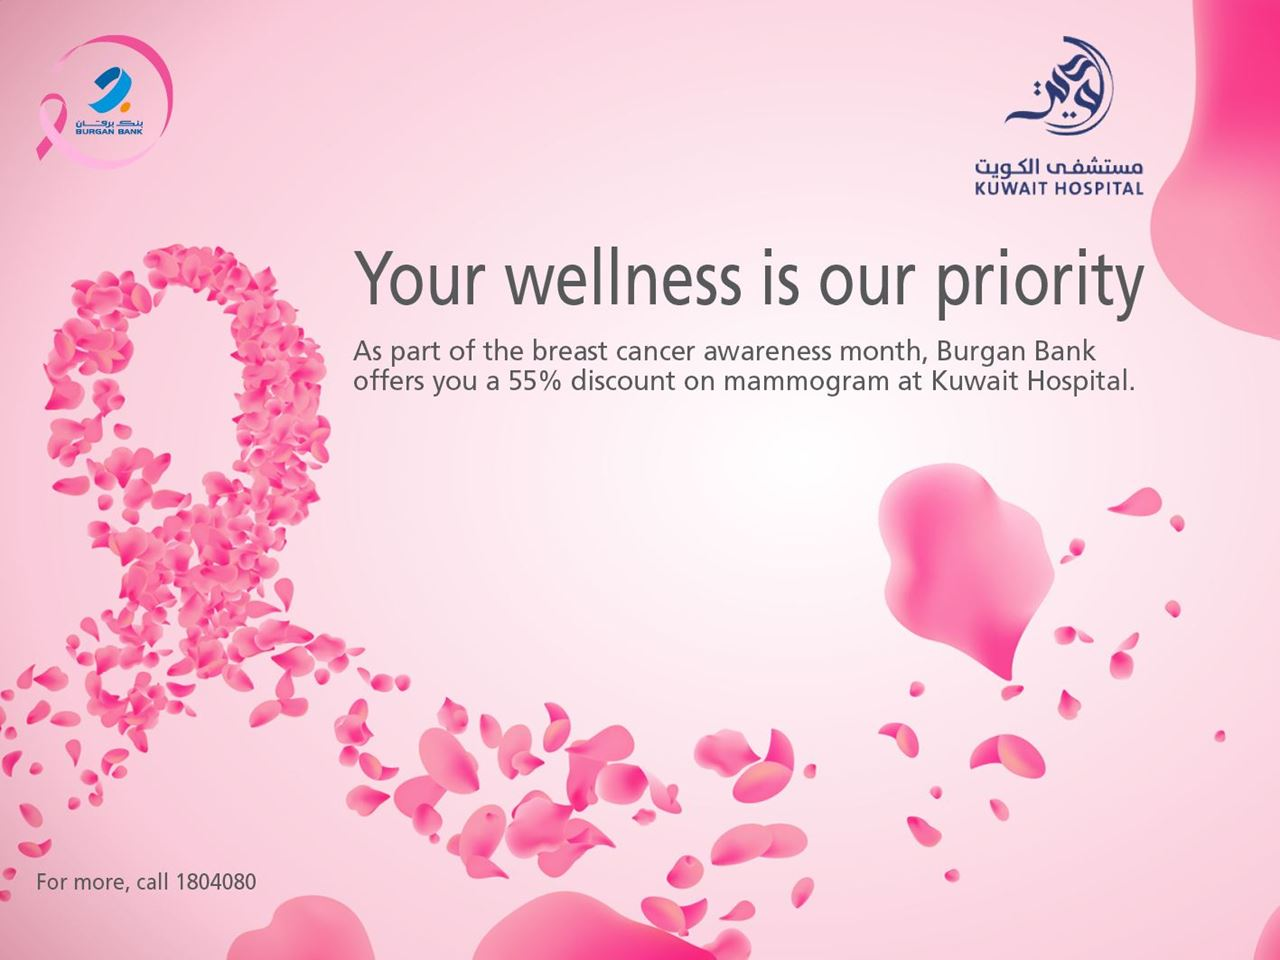 Burgan Bank Launches its Breast Cancer Awareness Month Offering in Collaboration with Kuwait Hospital